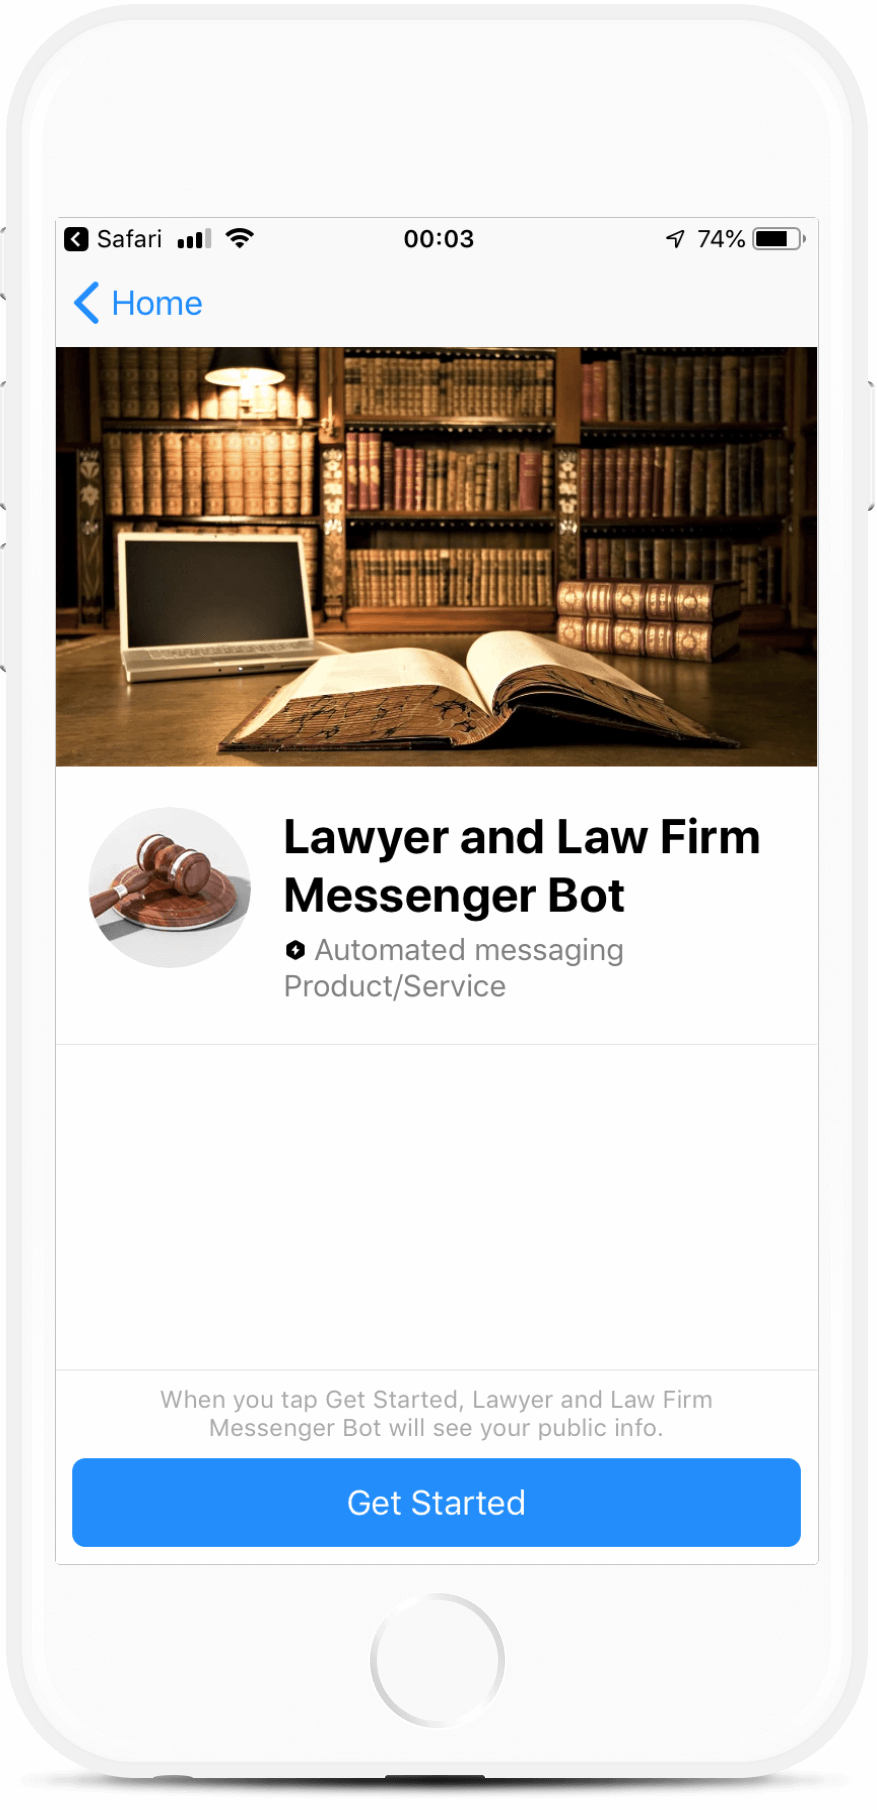 ManyChat Messenger Bot for Lawyers and Law Firms